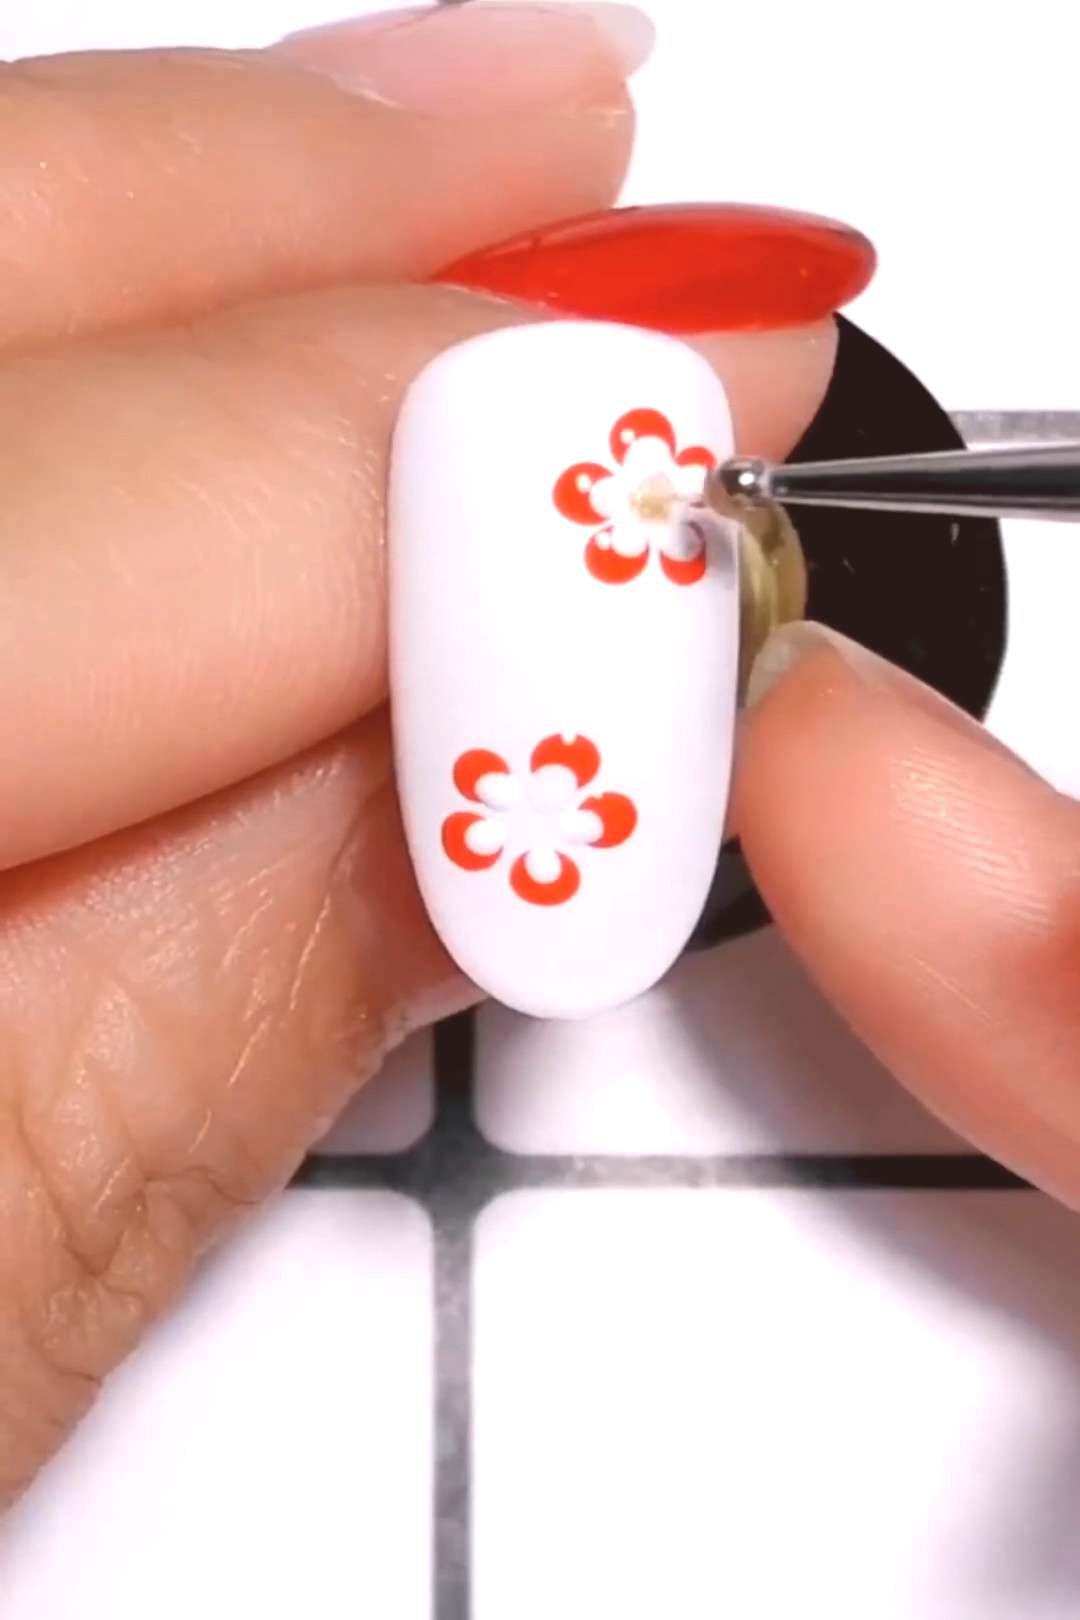 SUPER EASY DOTTED FLORAL NAIL DESIGN  This nail design is a MUST TRY! So beautiful!